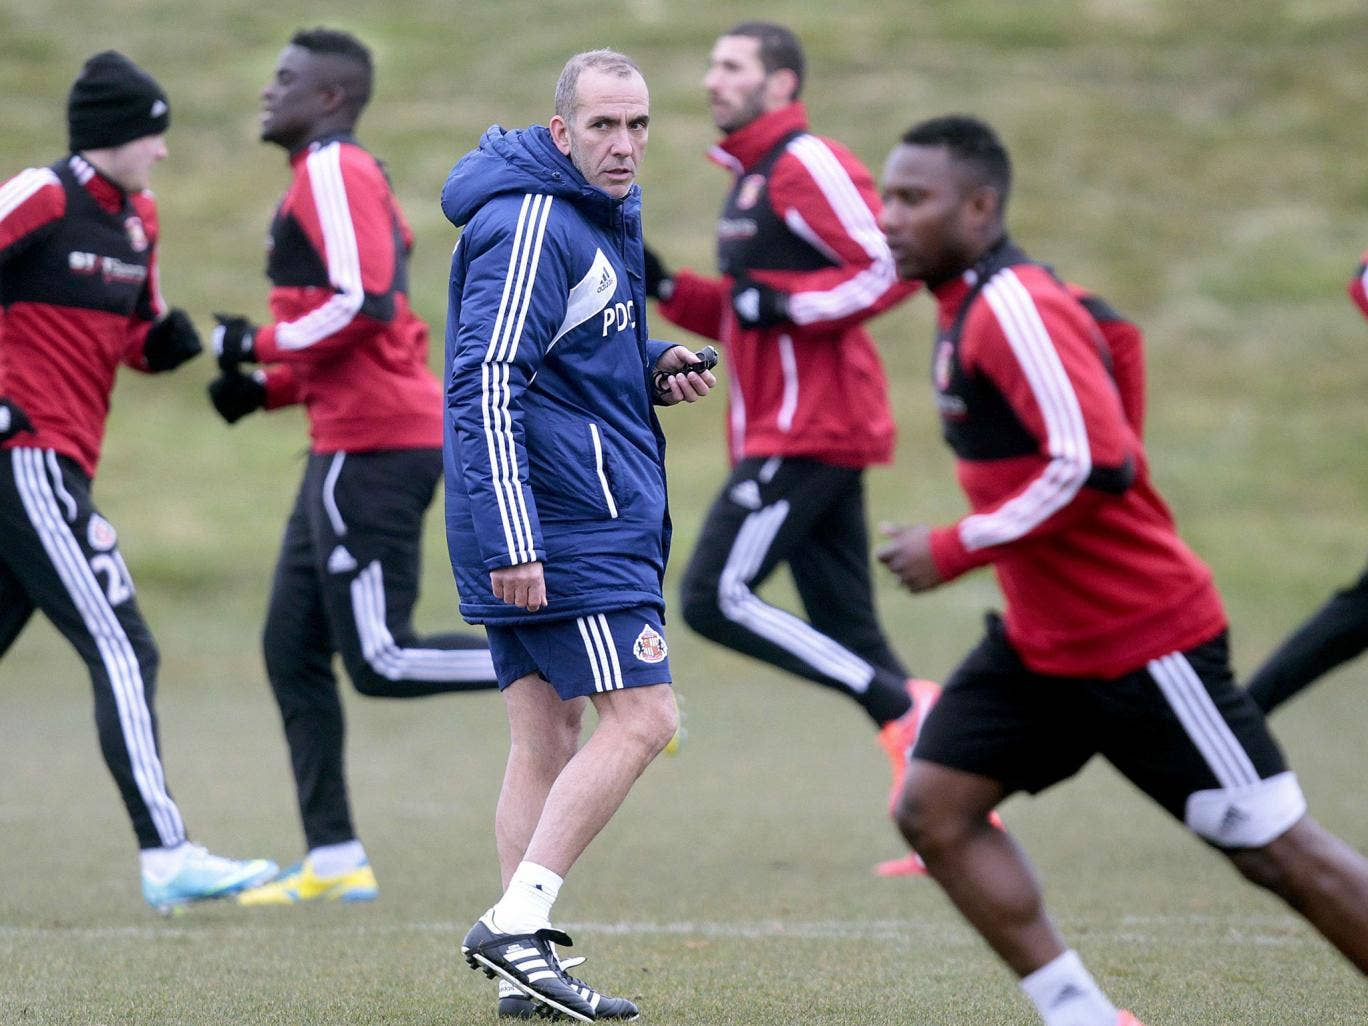 Tyne trials: Sunderland's manager Paolo Di Canio tests his players against the clock ahead of today's derby